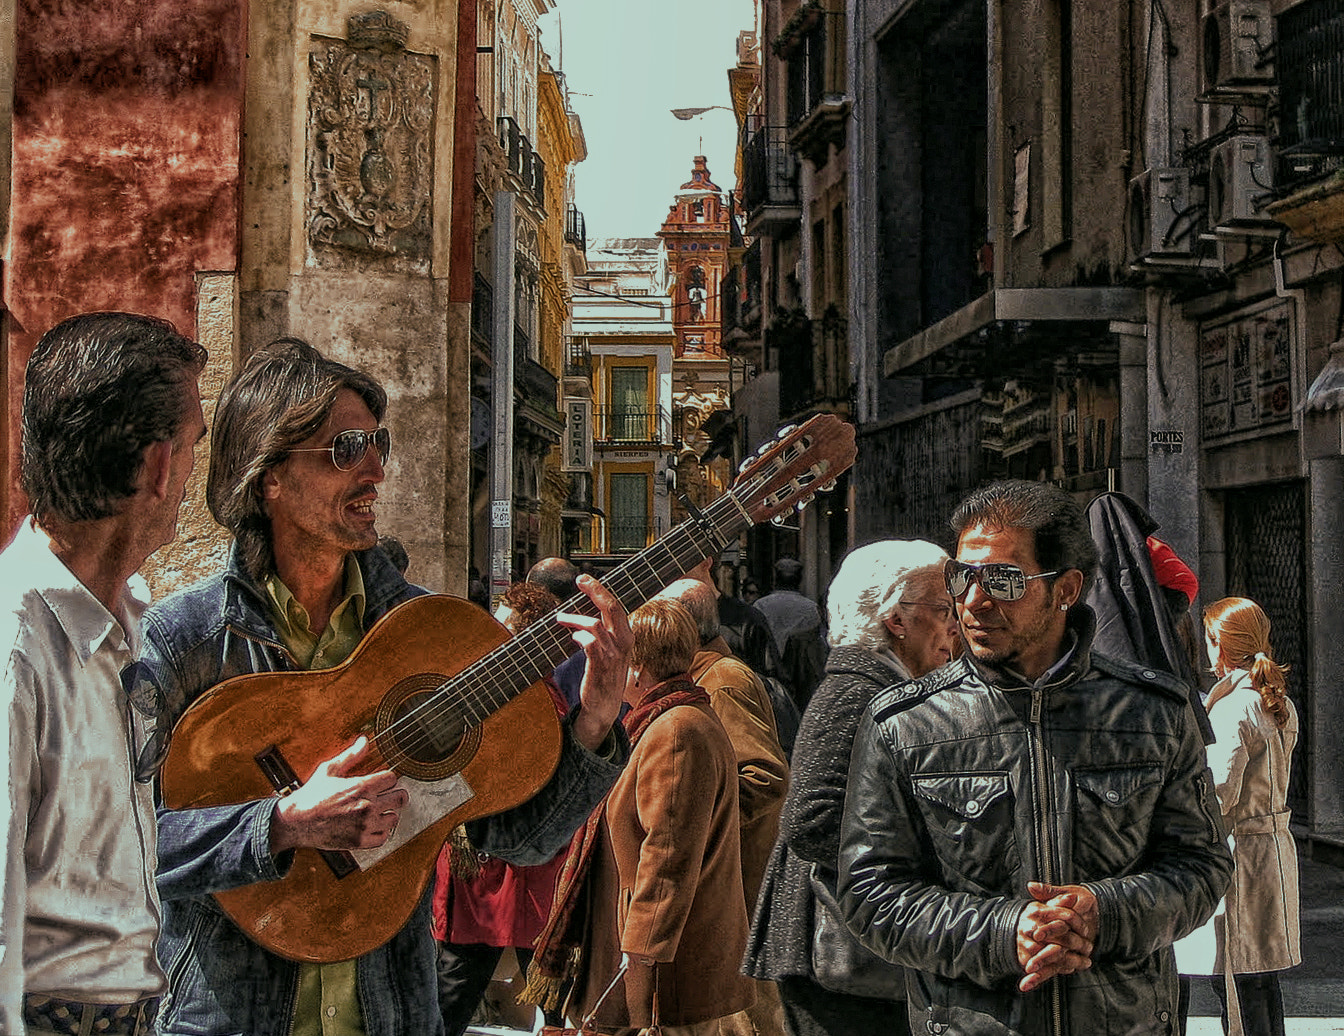 Photograph MUSICOS CALLEJEROS by Lola Camacho on 500px